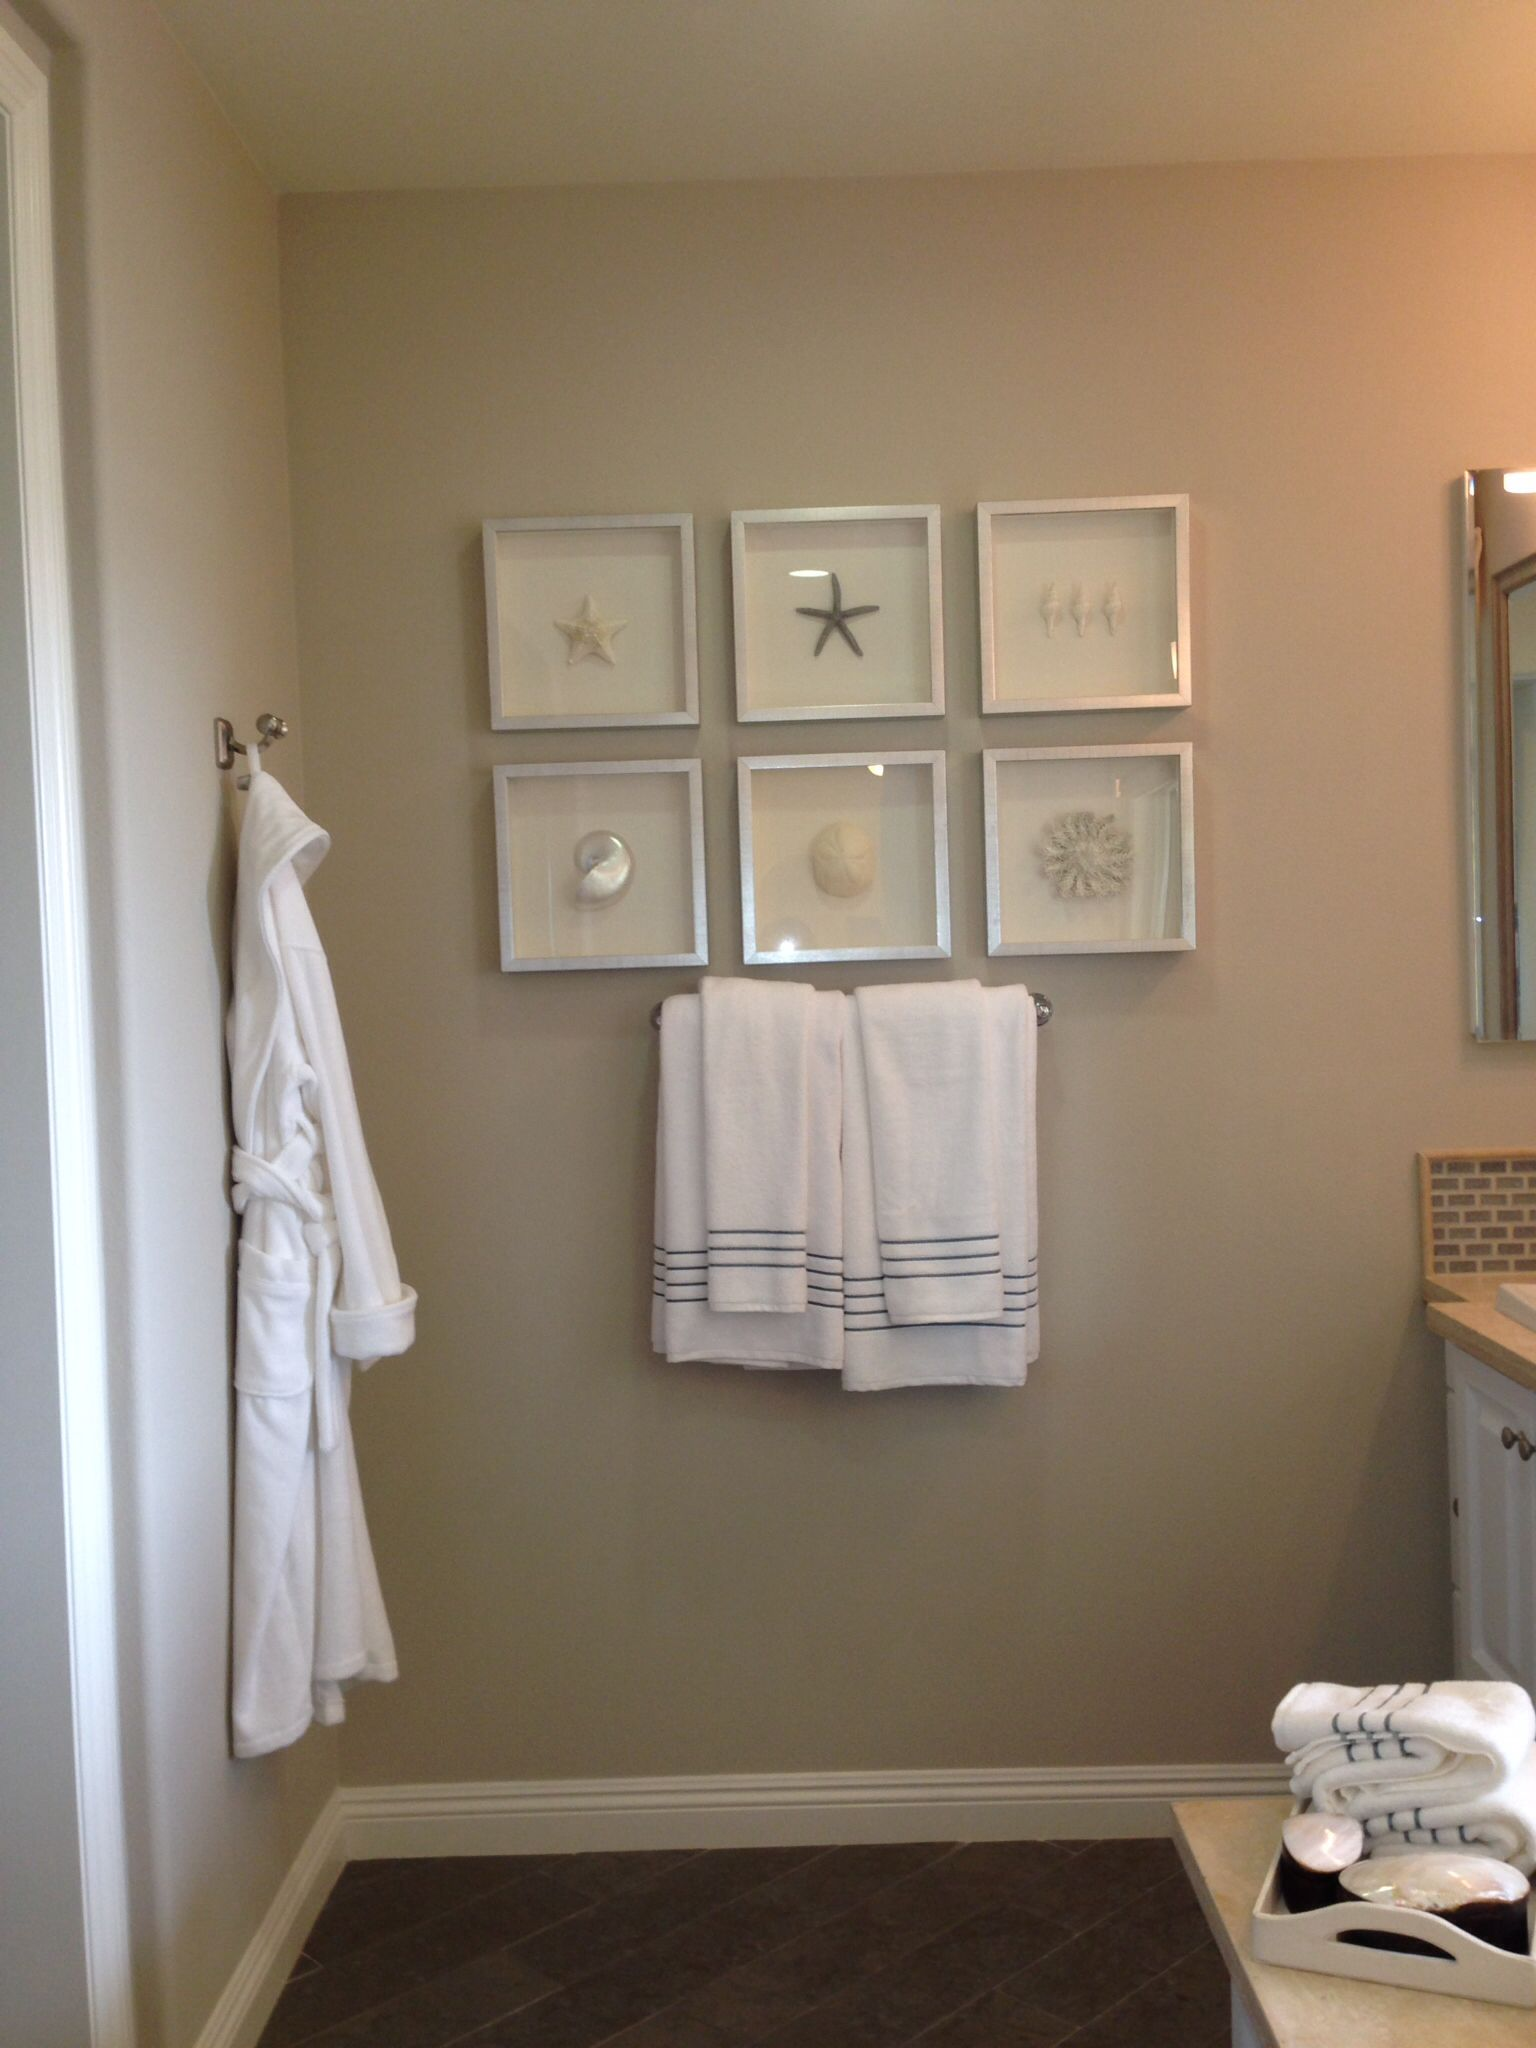 Bathroom beach decor framing ideas model home for Small bathroom sets